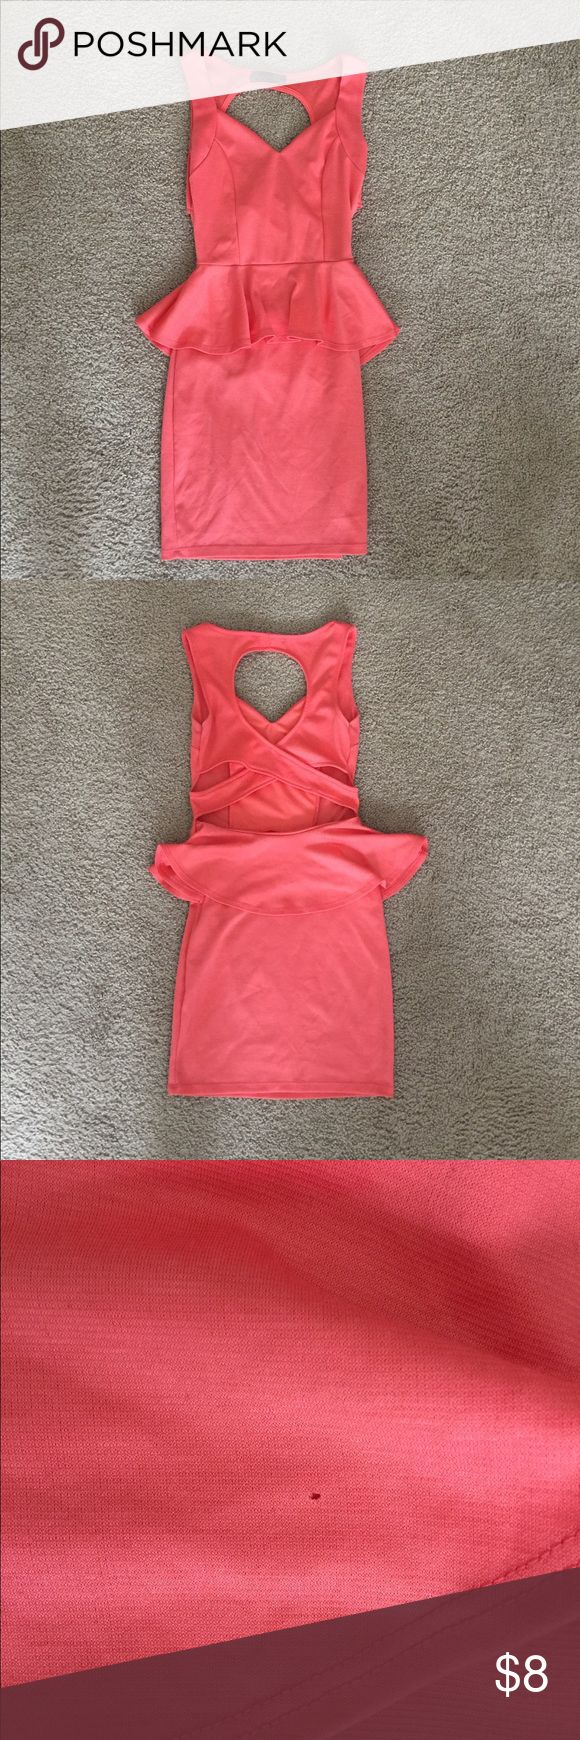 Peach Cross Back Dress Super Comfy Peplum Cross Back Dress Peachy color Size Small Perfect going out dress! Tiny pinhole in peplum on back as seen in photos Body Central Dresses Mini